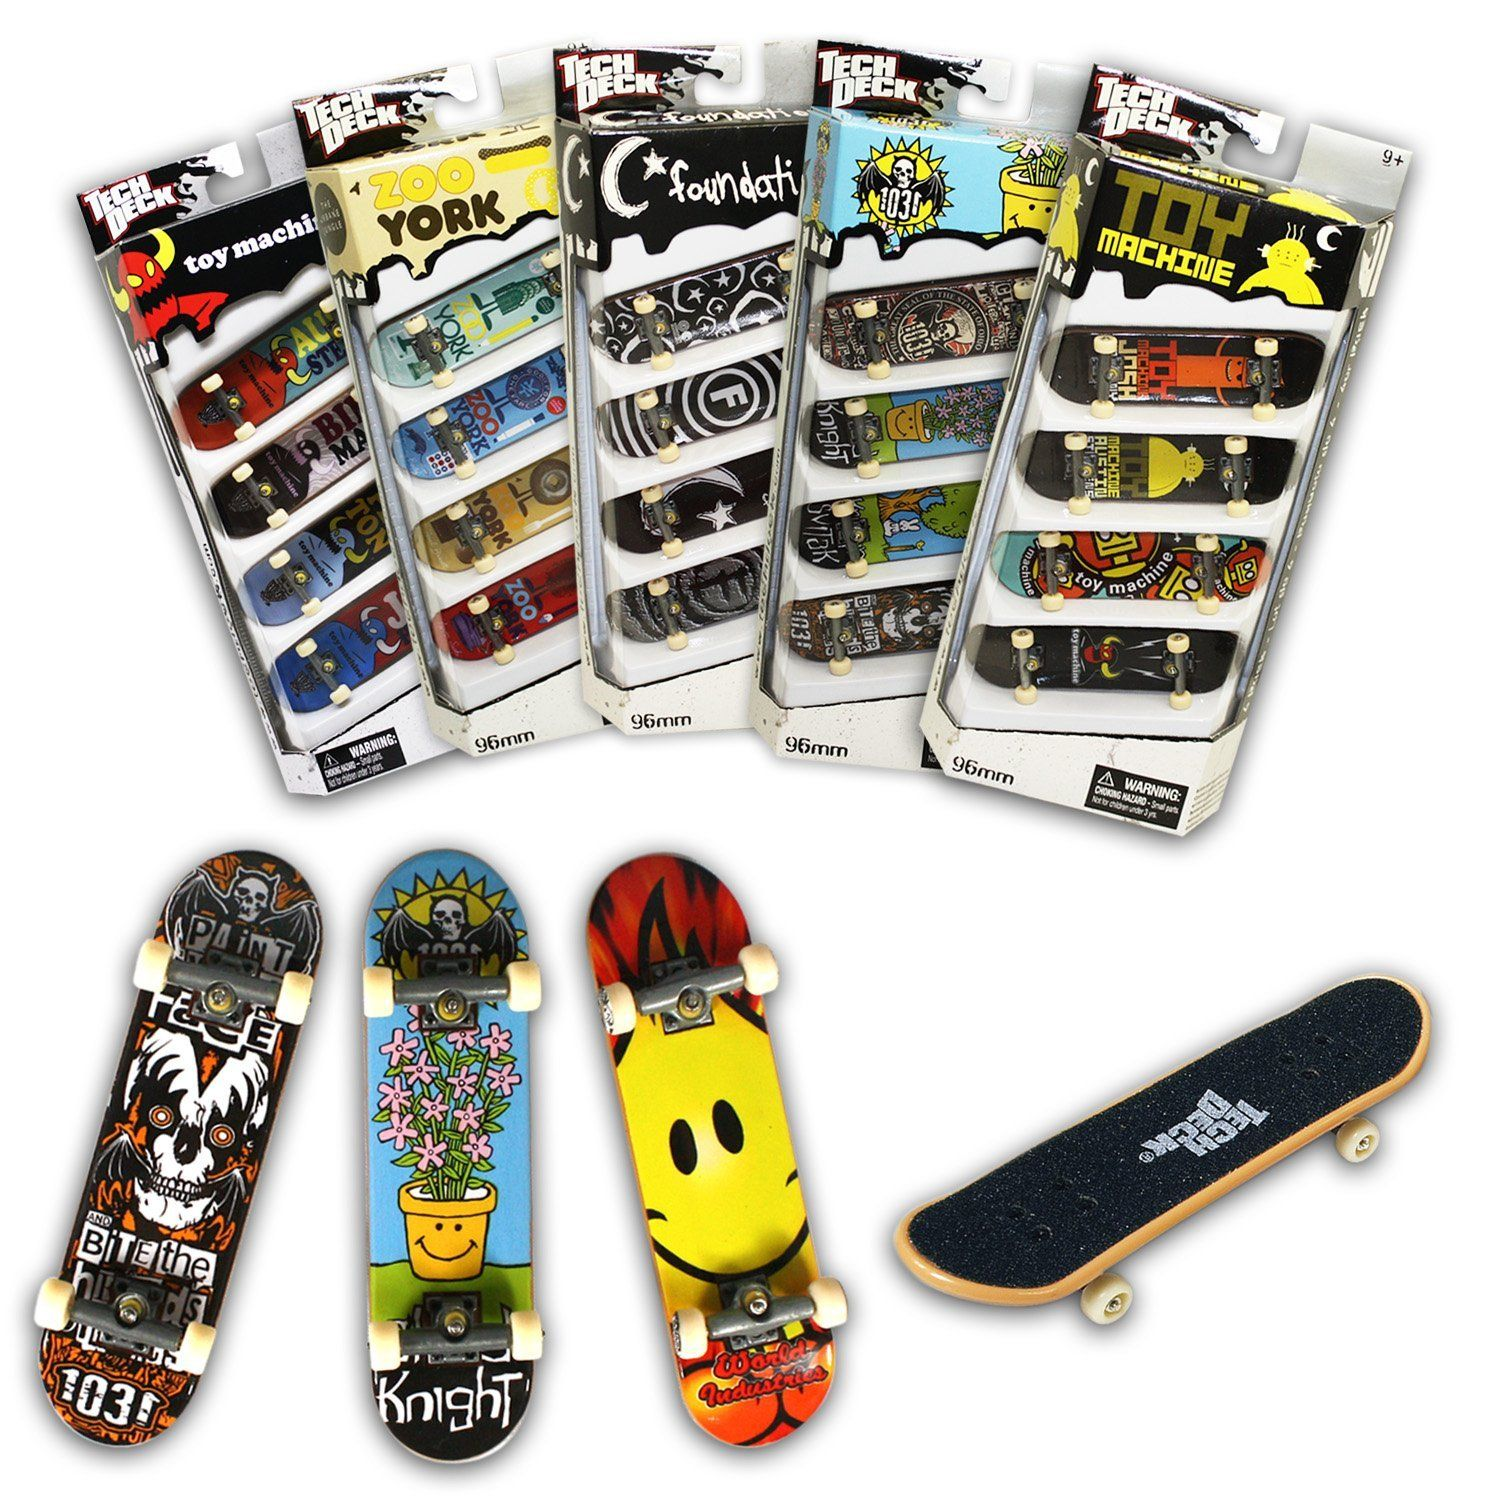 Amazon tech deck 96mm fingerboards 4 pack styles vary toys amazon tech deck 96mm fingerboards 4 pack styles vary toys baanklon Gallery